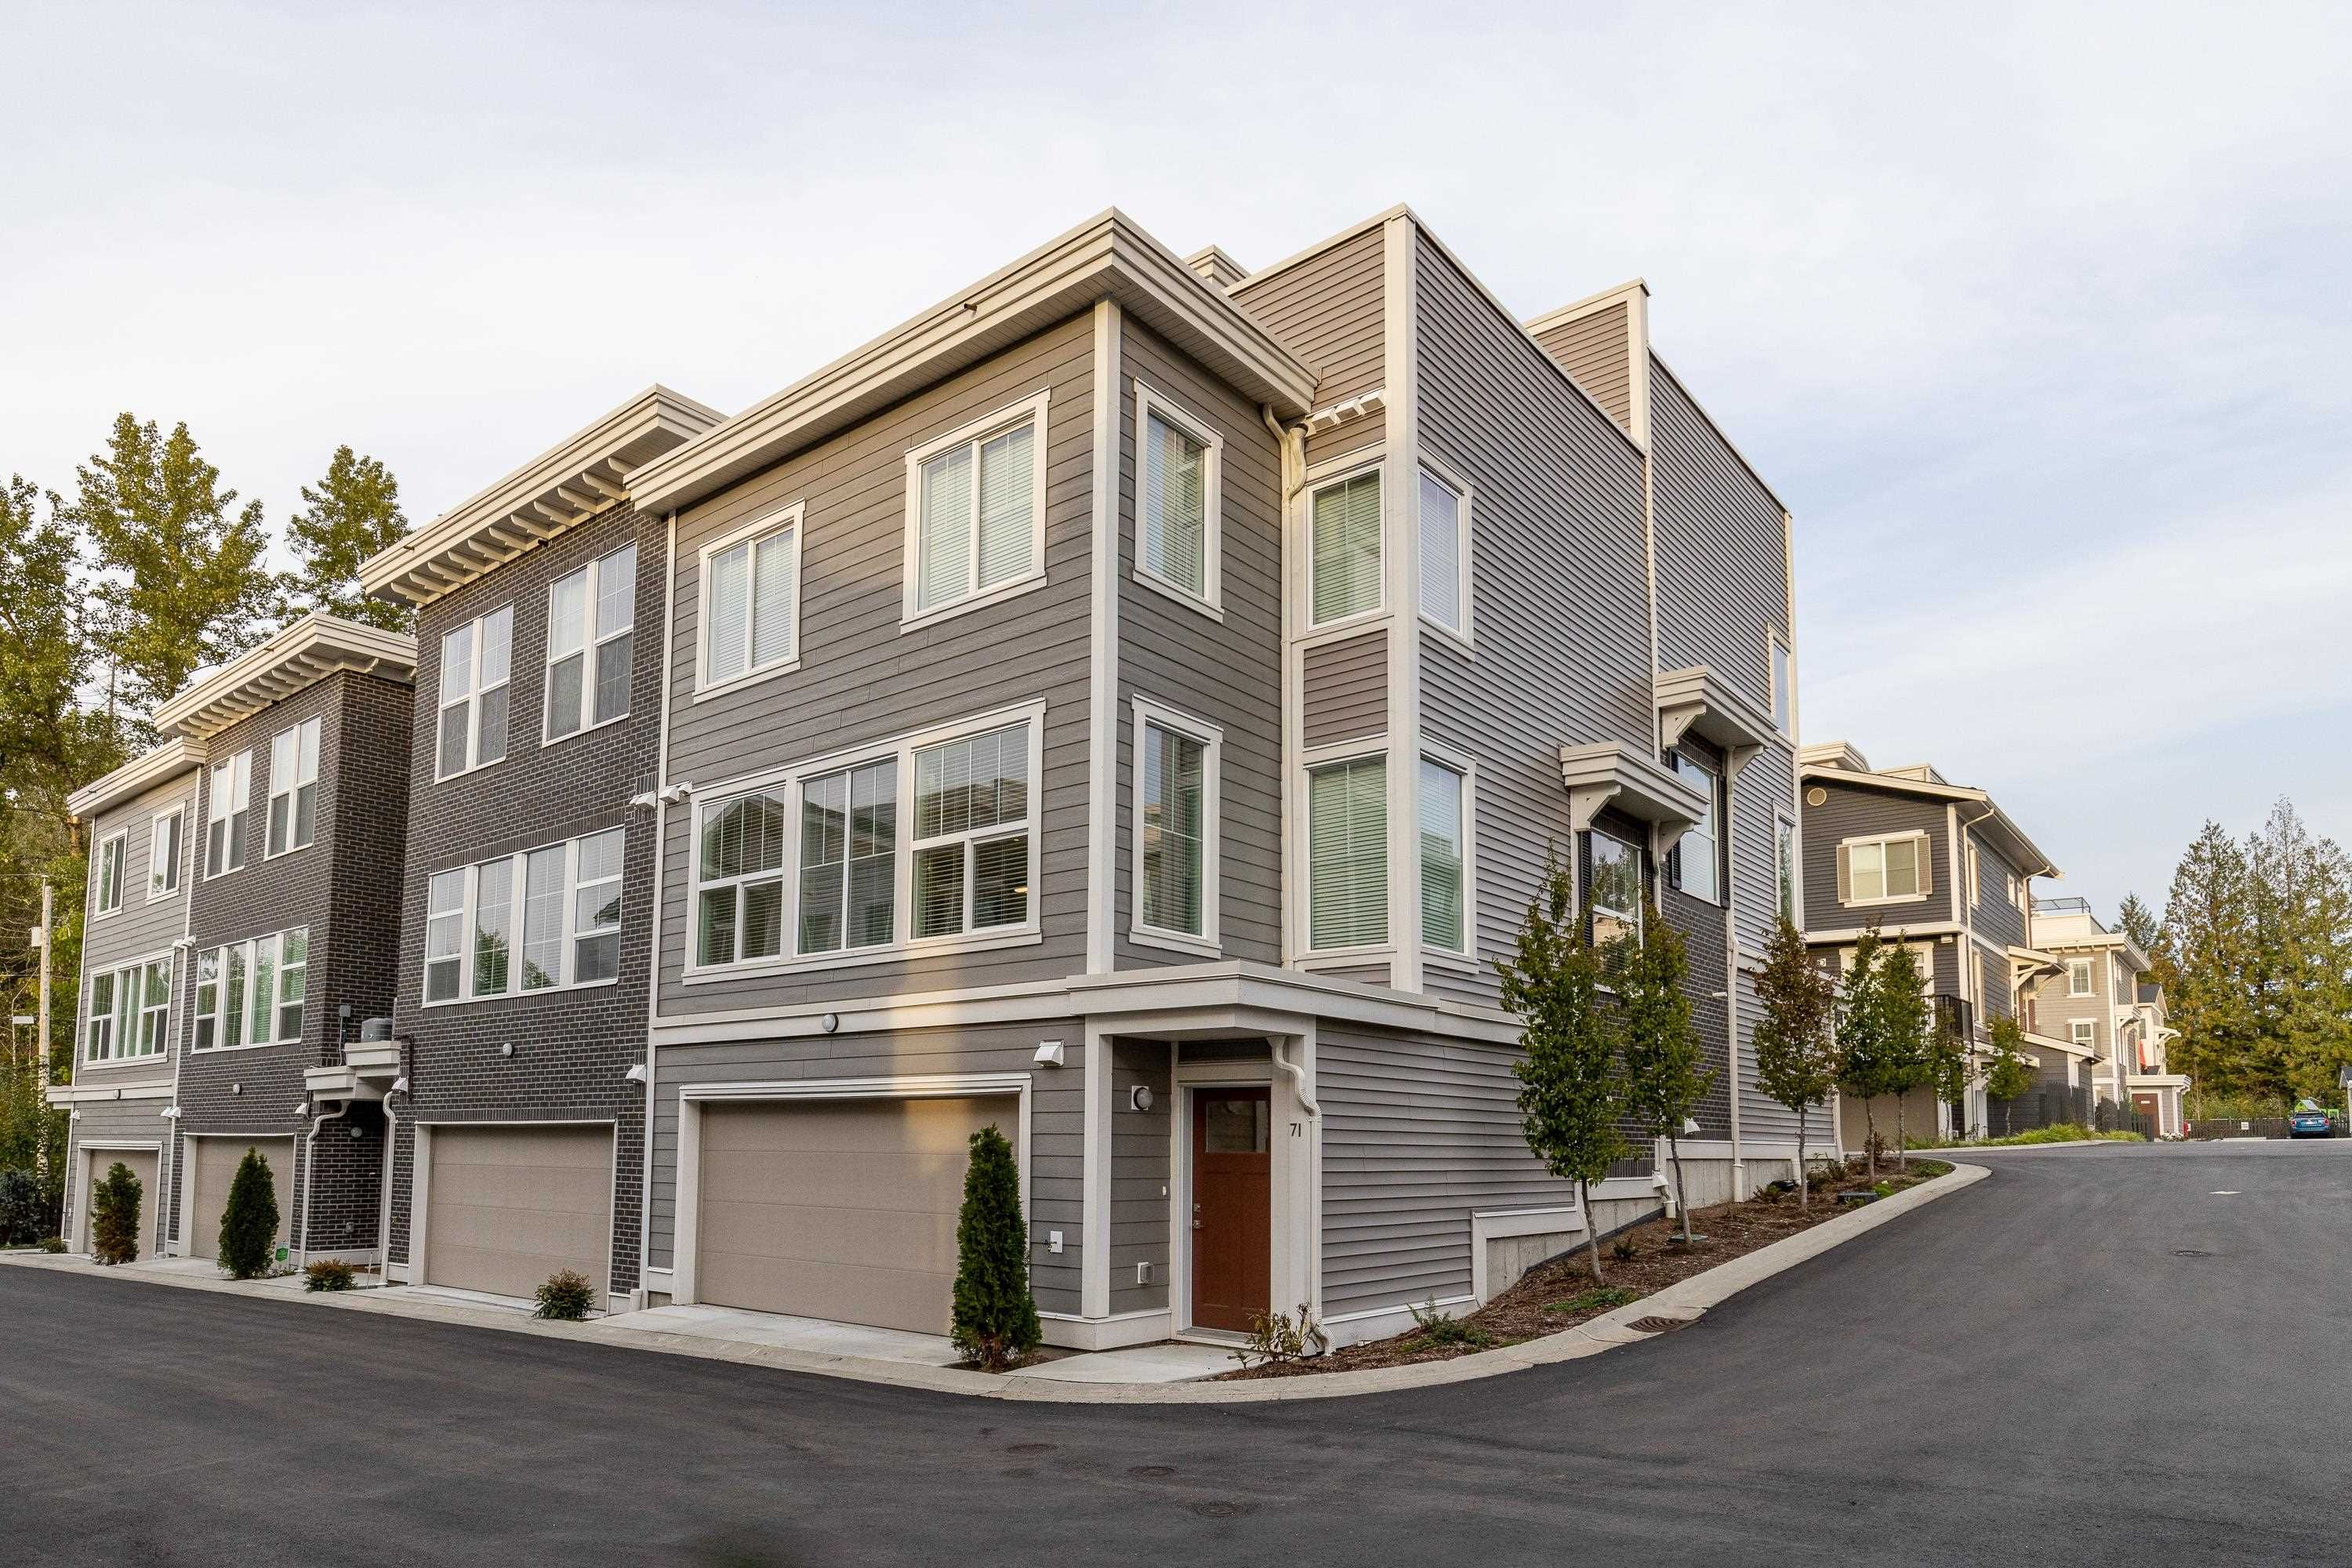 """Main Photo: 71 8371 202B Street in Langley: Willoughby Heights Townhouse for sale in """"Kensington Lofts"""" : MLS®# R2624077"""